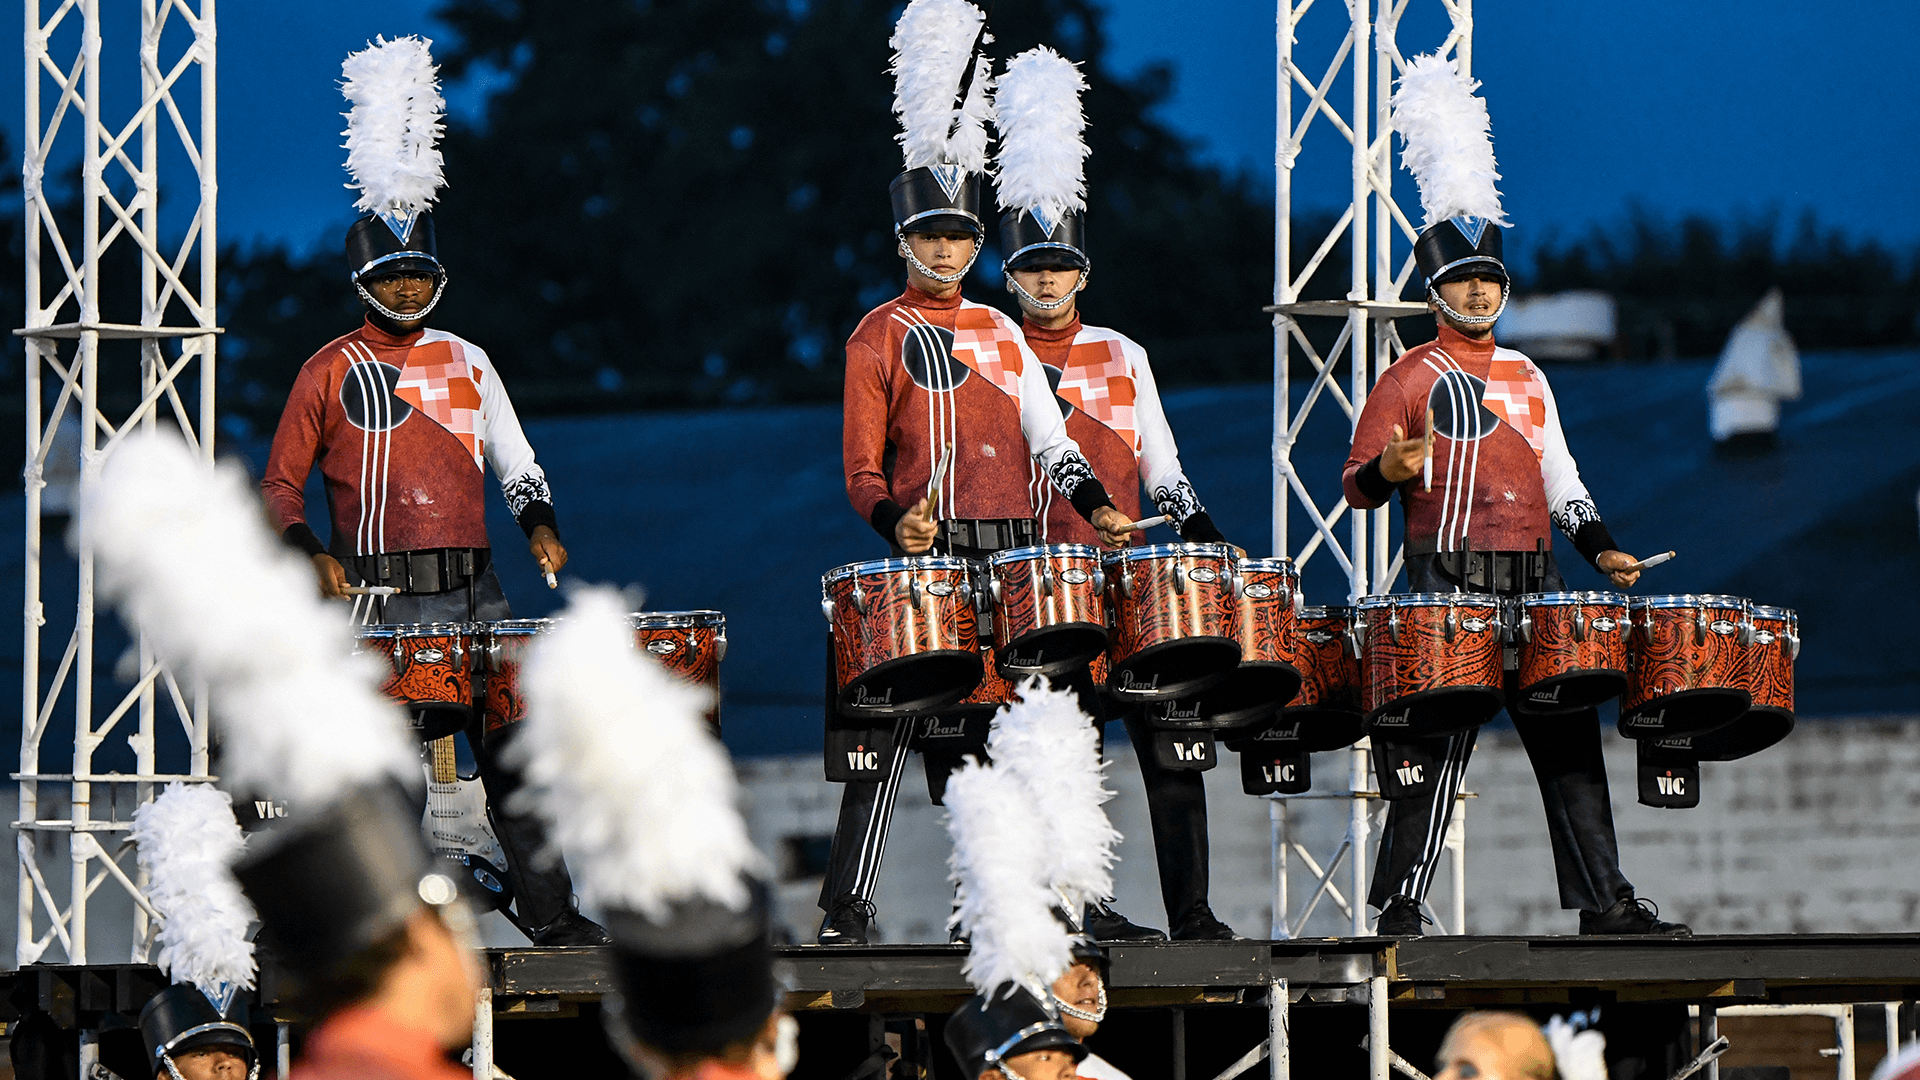 Drums Across the River Region